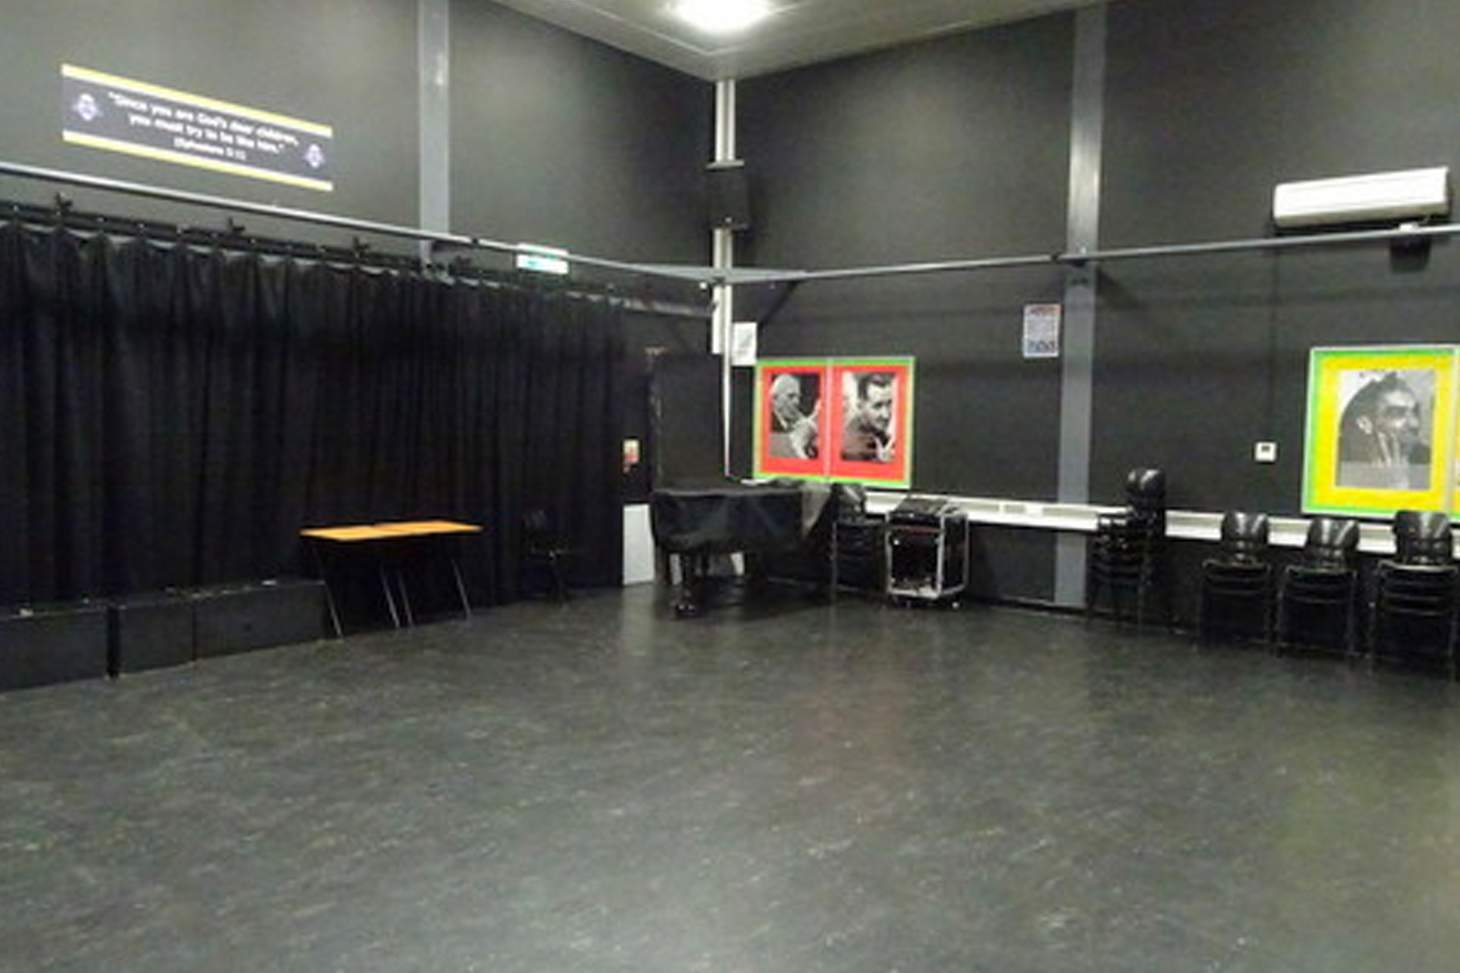 Bishop Challoner Catholic Federation of Schools Drama studio space hire